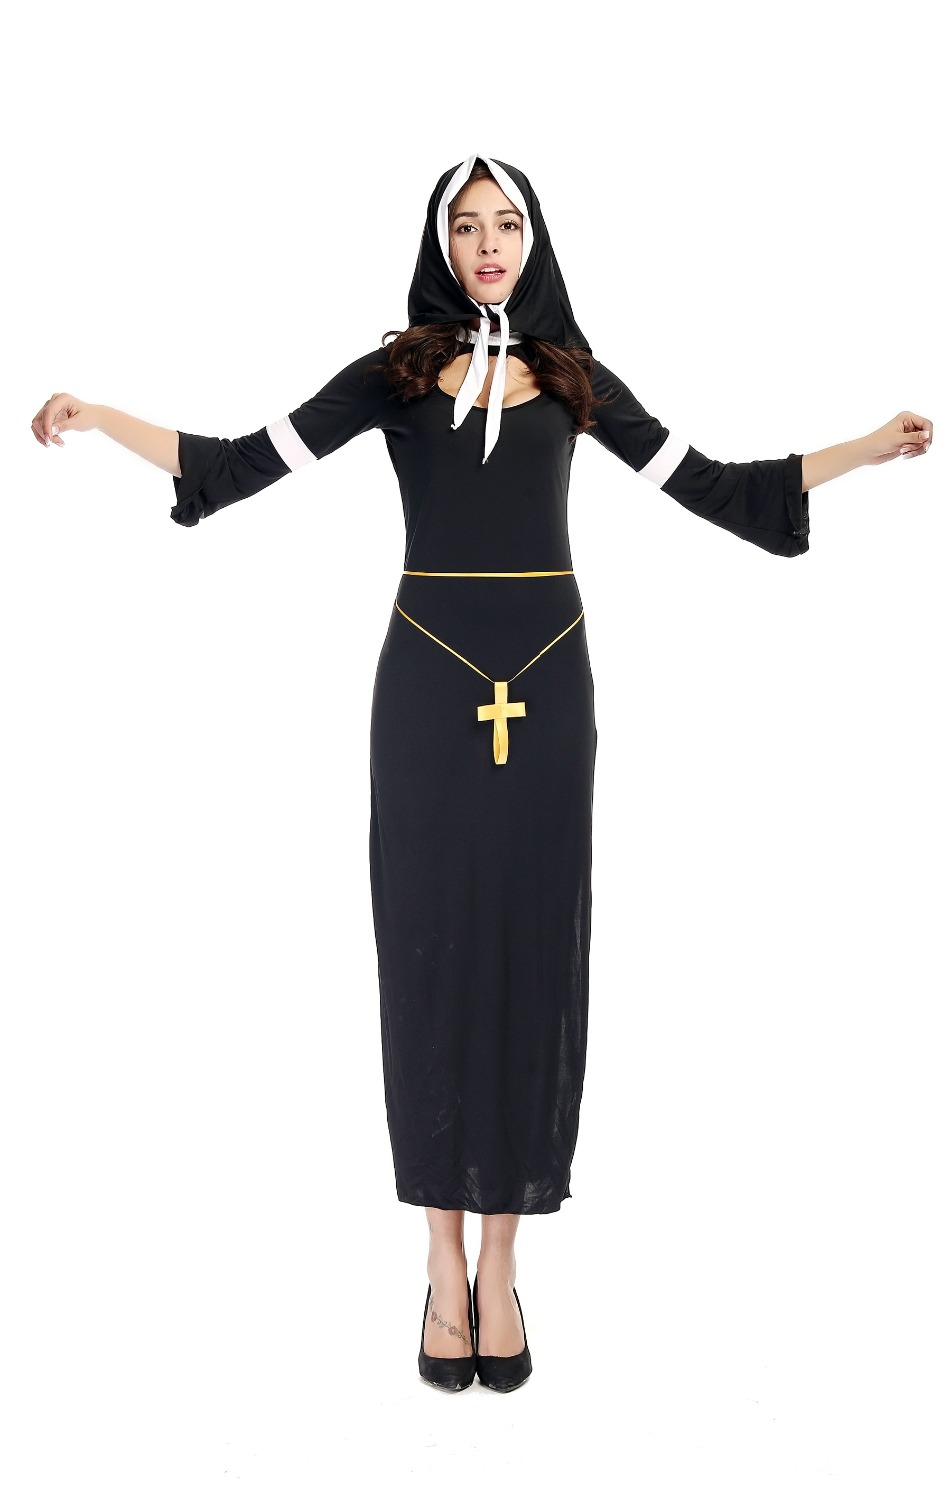 Free Shipping Adult Women Sexy Catholicism Nun Costume Uniform The Virgin Mary Roleplay Black Dress Halloween Costumes